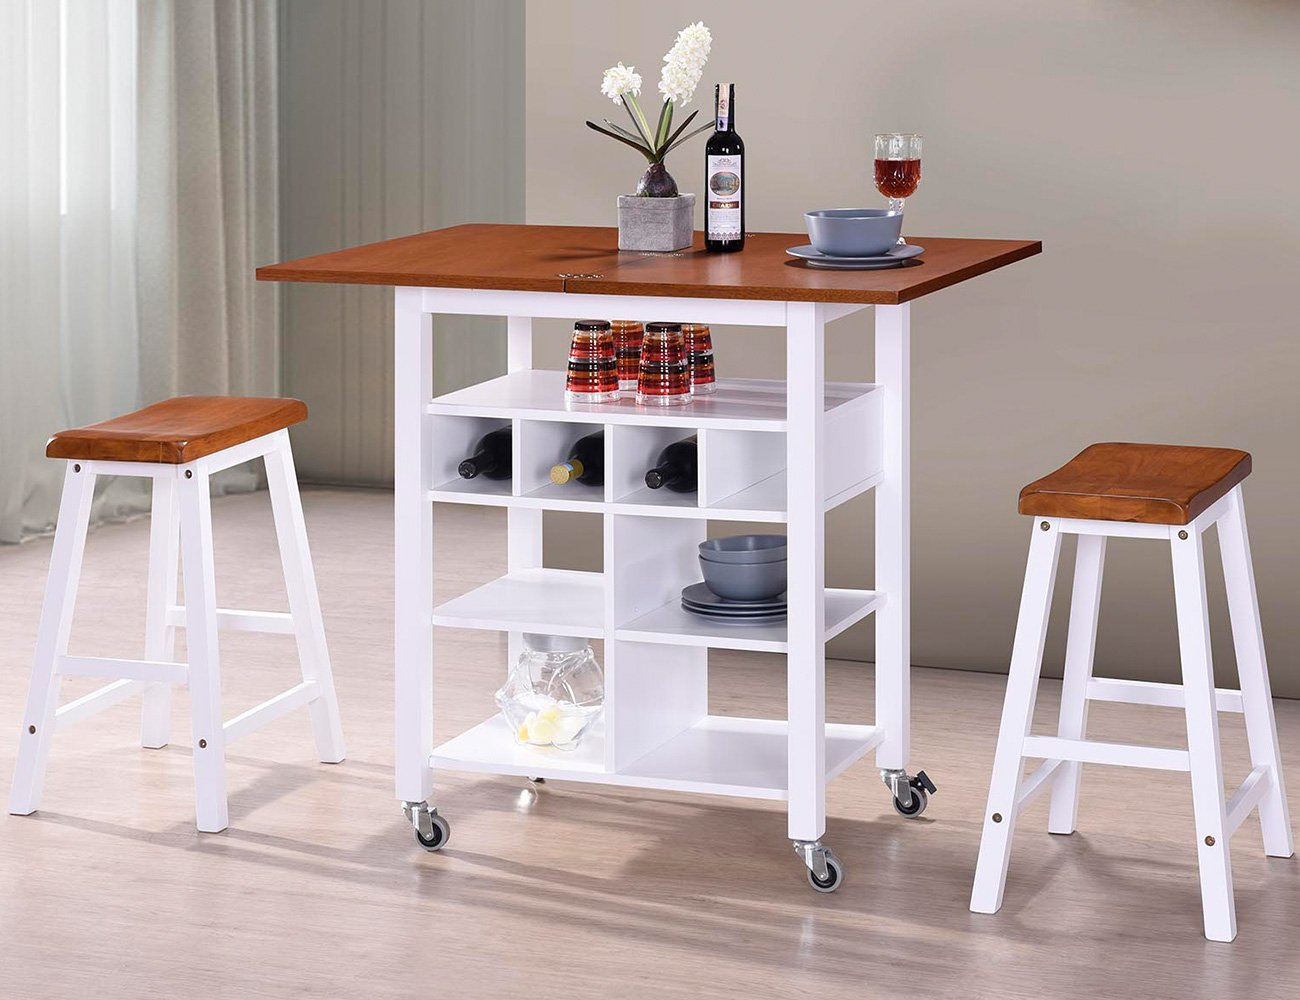 Harper&Bright Designs WF038521LAA Phoenix Series Dining 3-Piece Set with Storage Shelves, Folding Table Top and 2 Locking Castors (Oak and White)